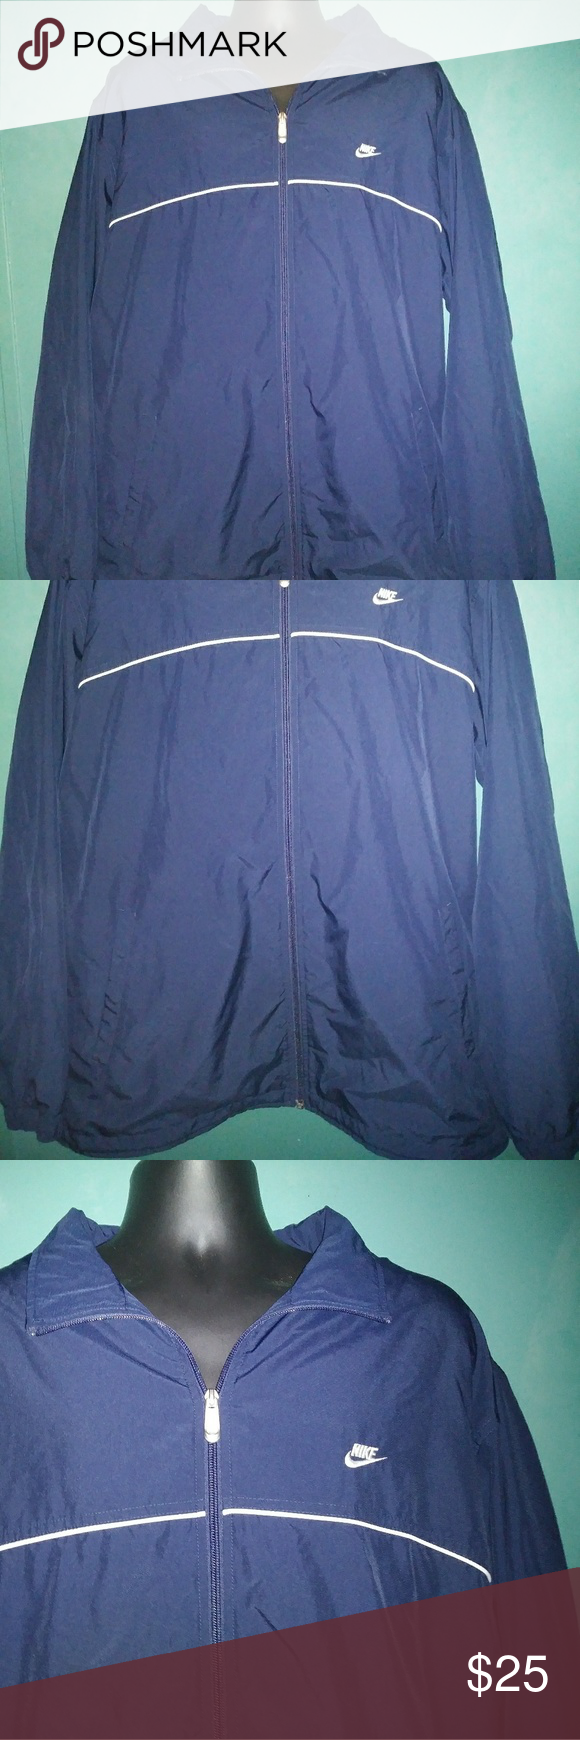 Navy Blue Nike Team Windbreaker Track Jacket Mens Gently worn only a few times. Men's Nike windbreaker. Size XXL.  Outter shell: 100% polyester Inner: 65% polyester, 35% cotton Sleeve lining: 100% nylon RN#56323 Offers welcome!  Gift wrapping available upon request free of charge. Nike Jackets & Coats Windbreakers